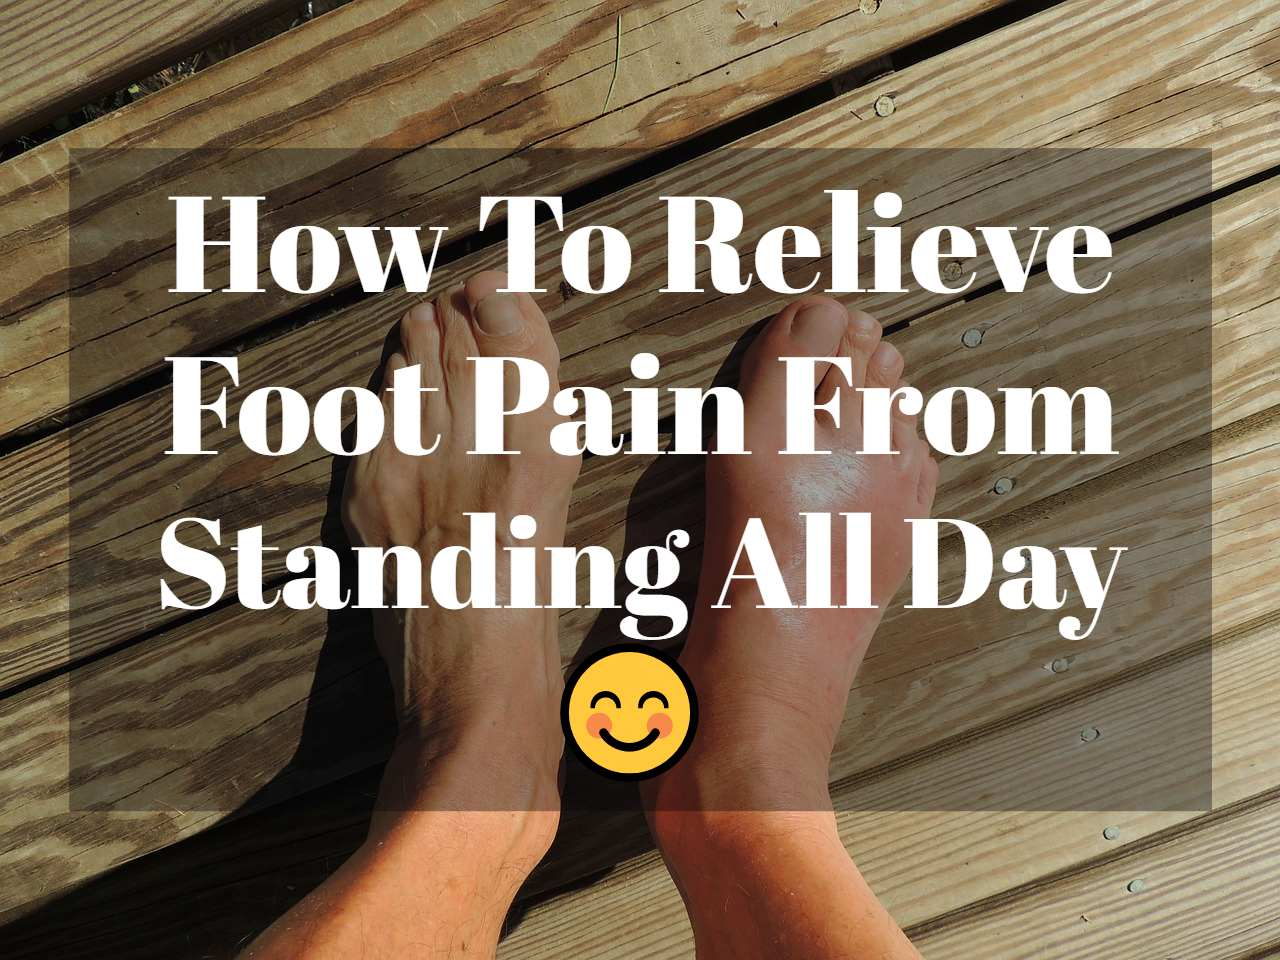 How to relieve foot pain from standing all day 😊: 6 Easy Ways!